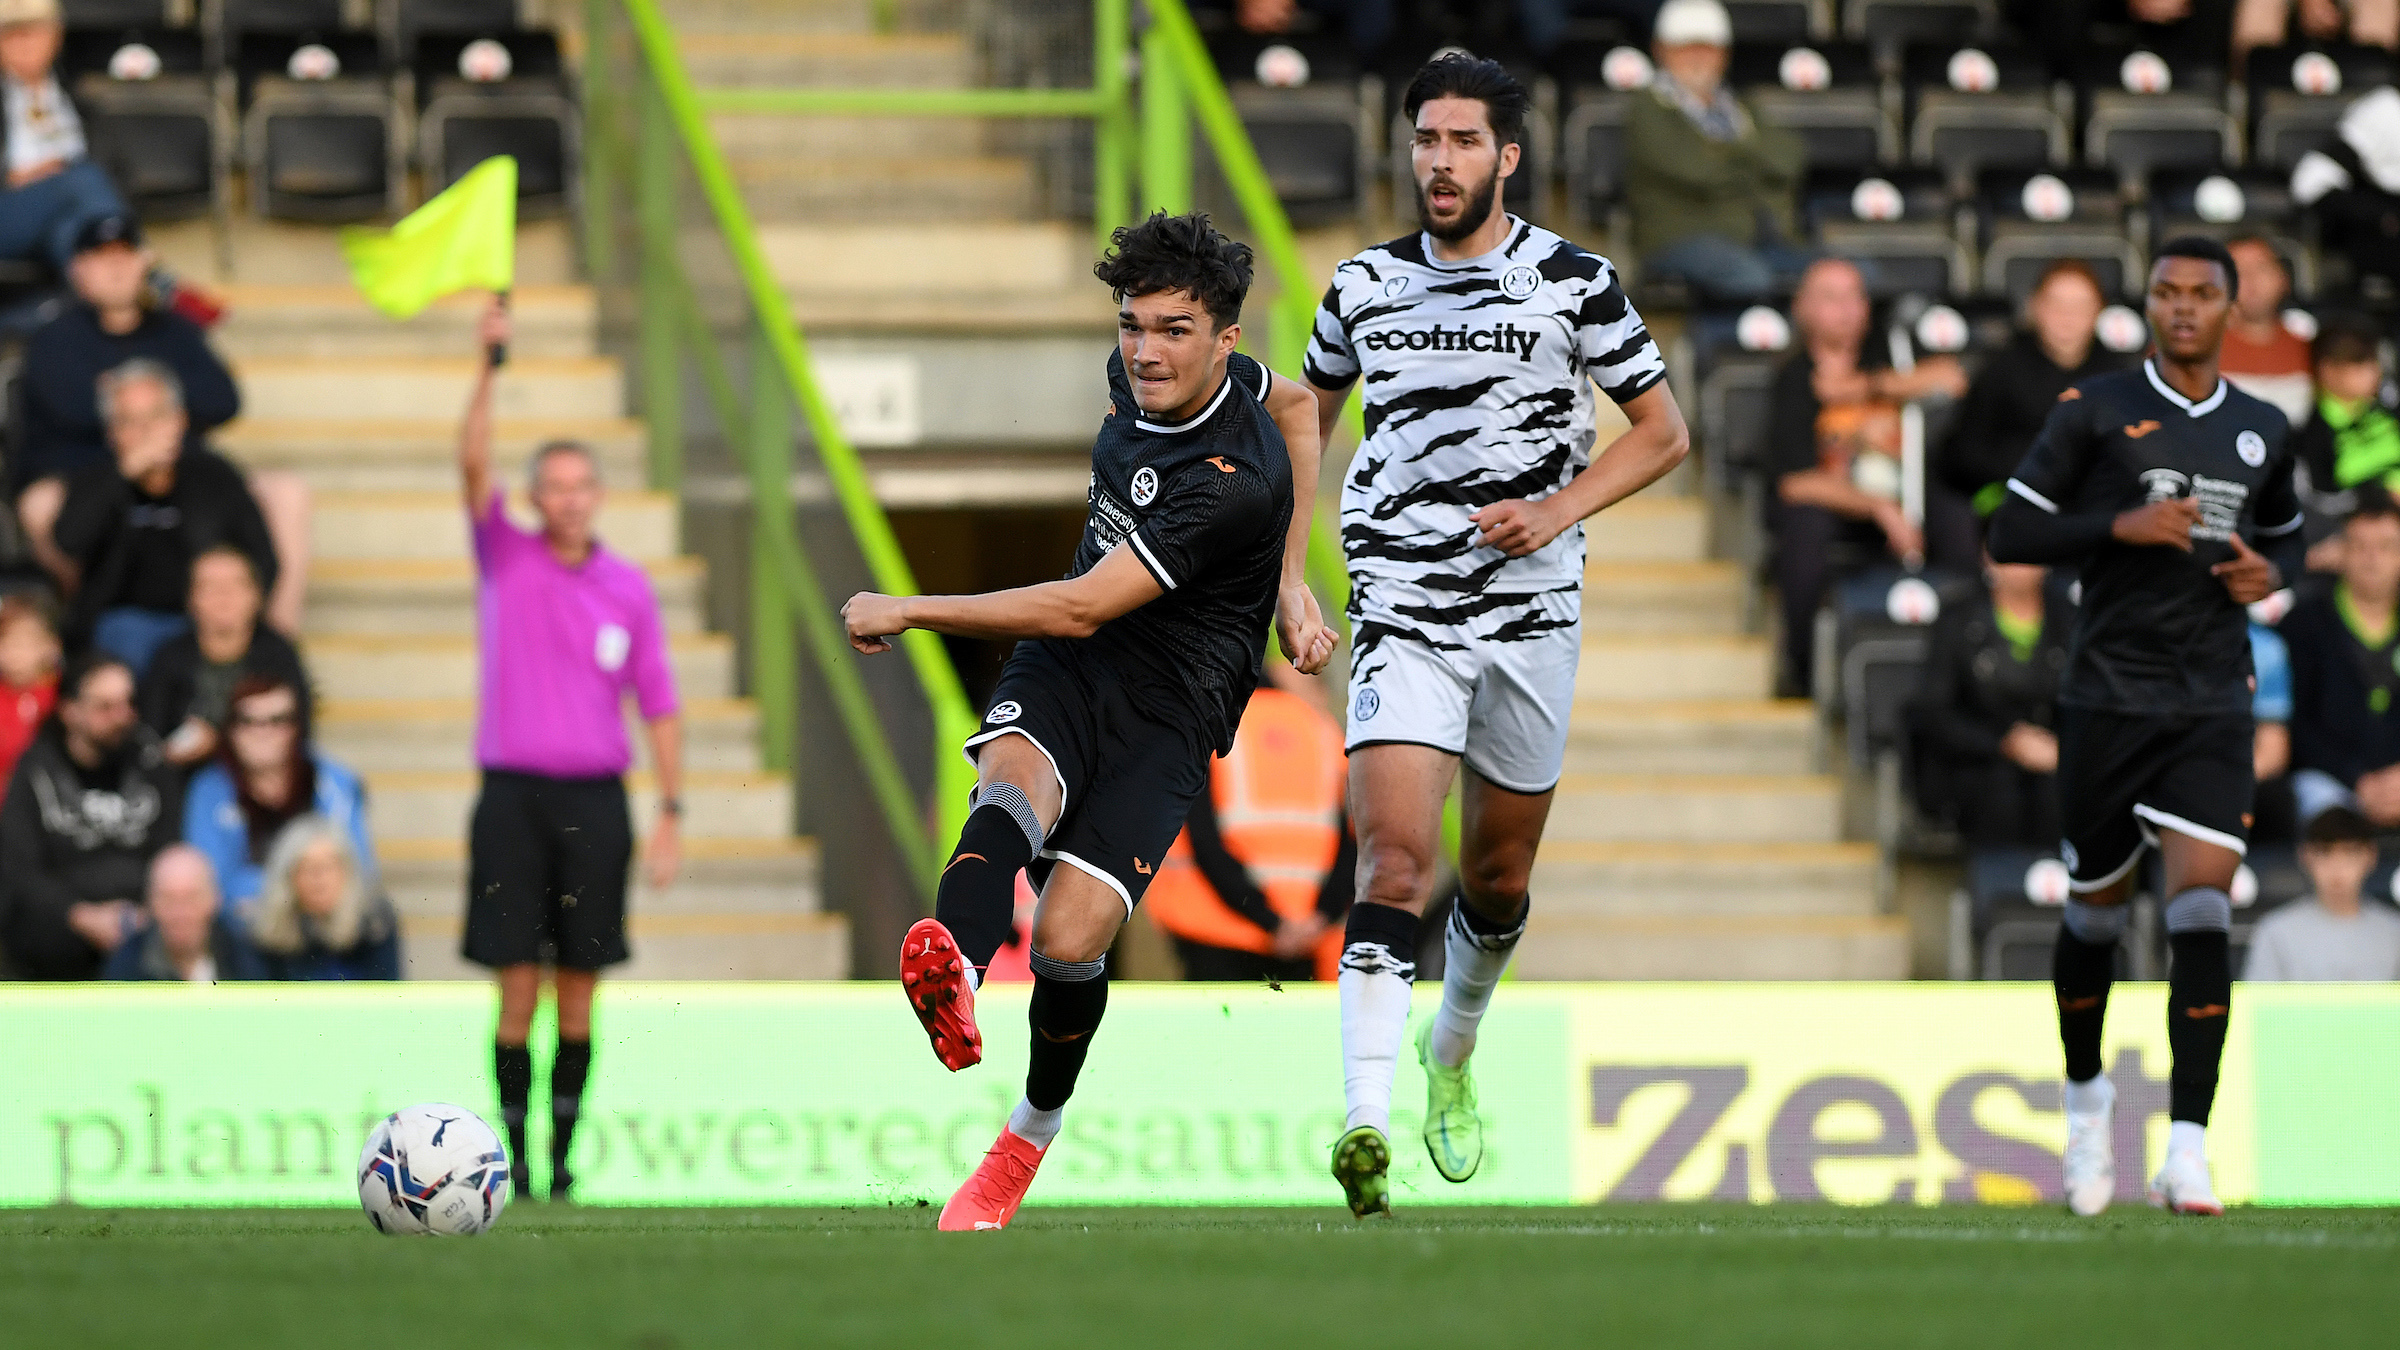 Forest Green Rovers v Swansea City